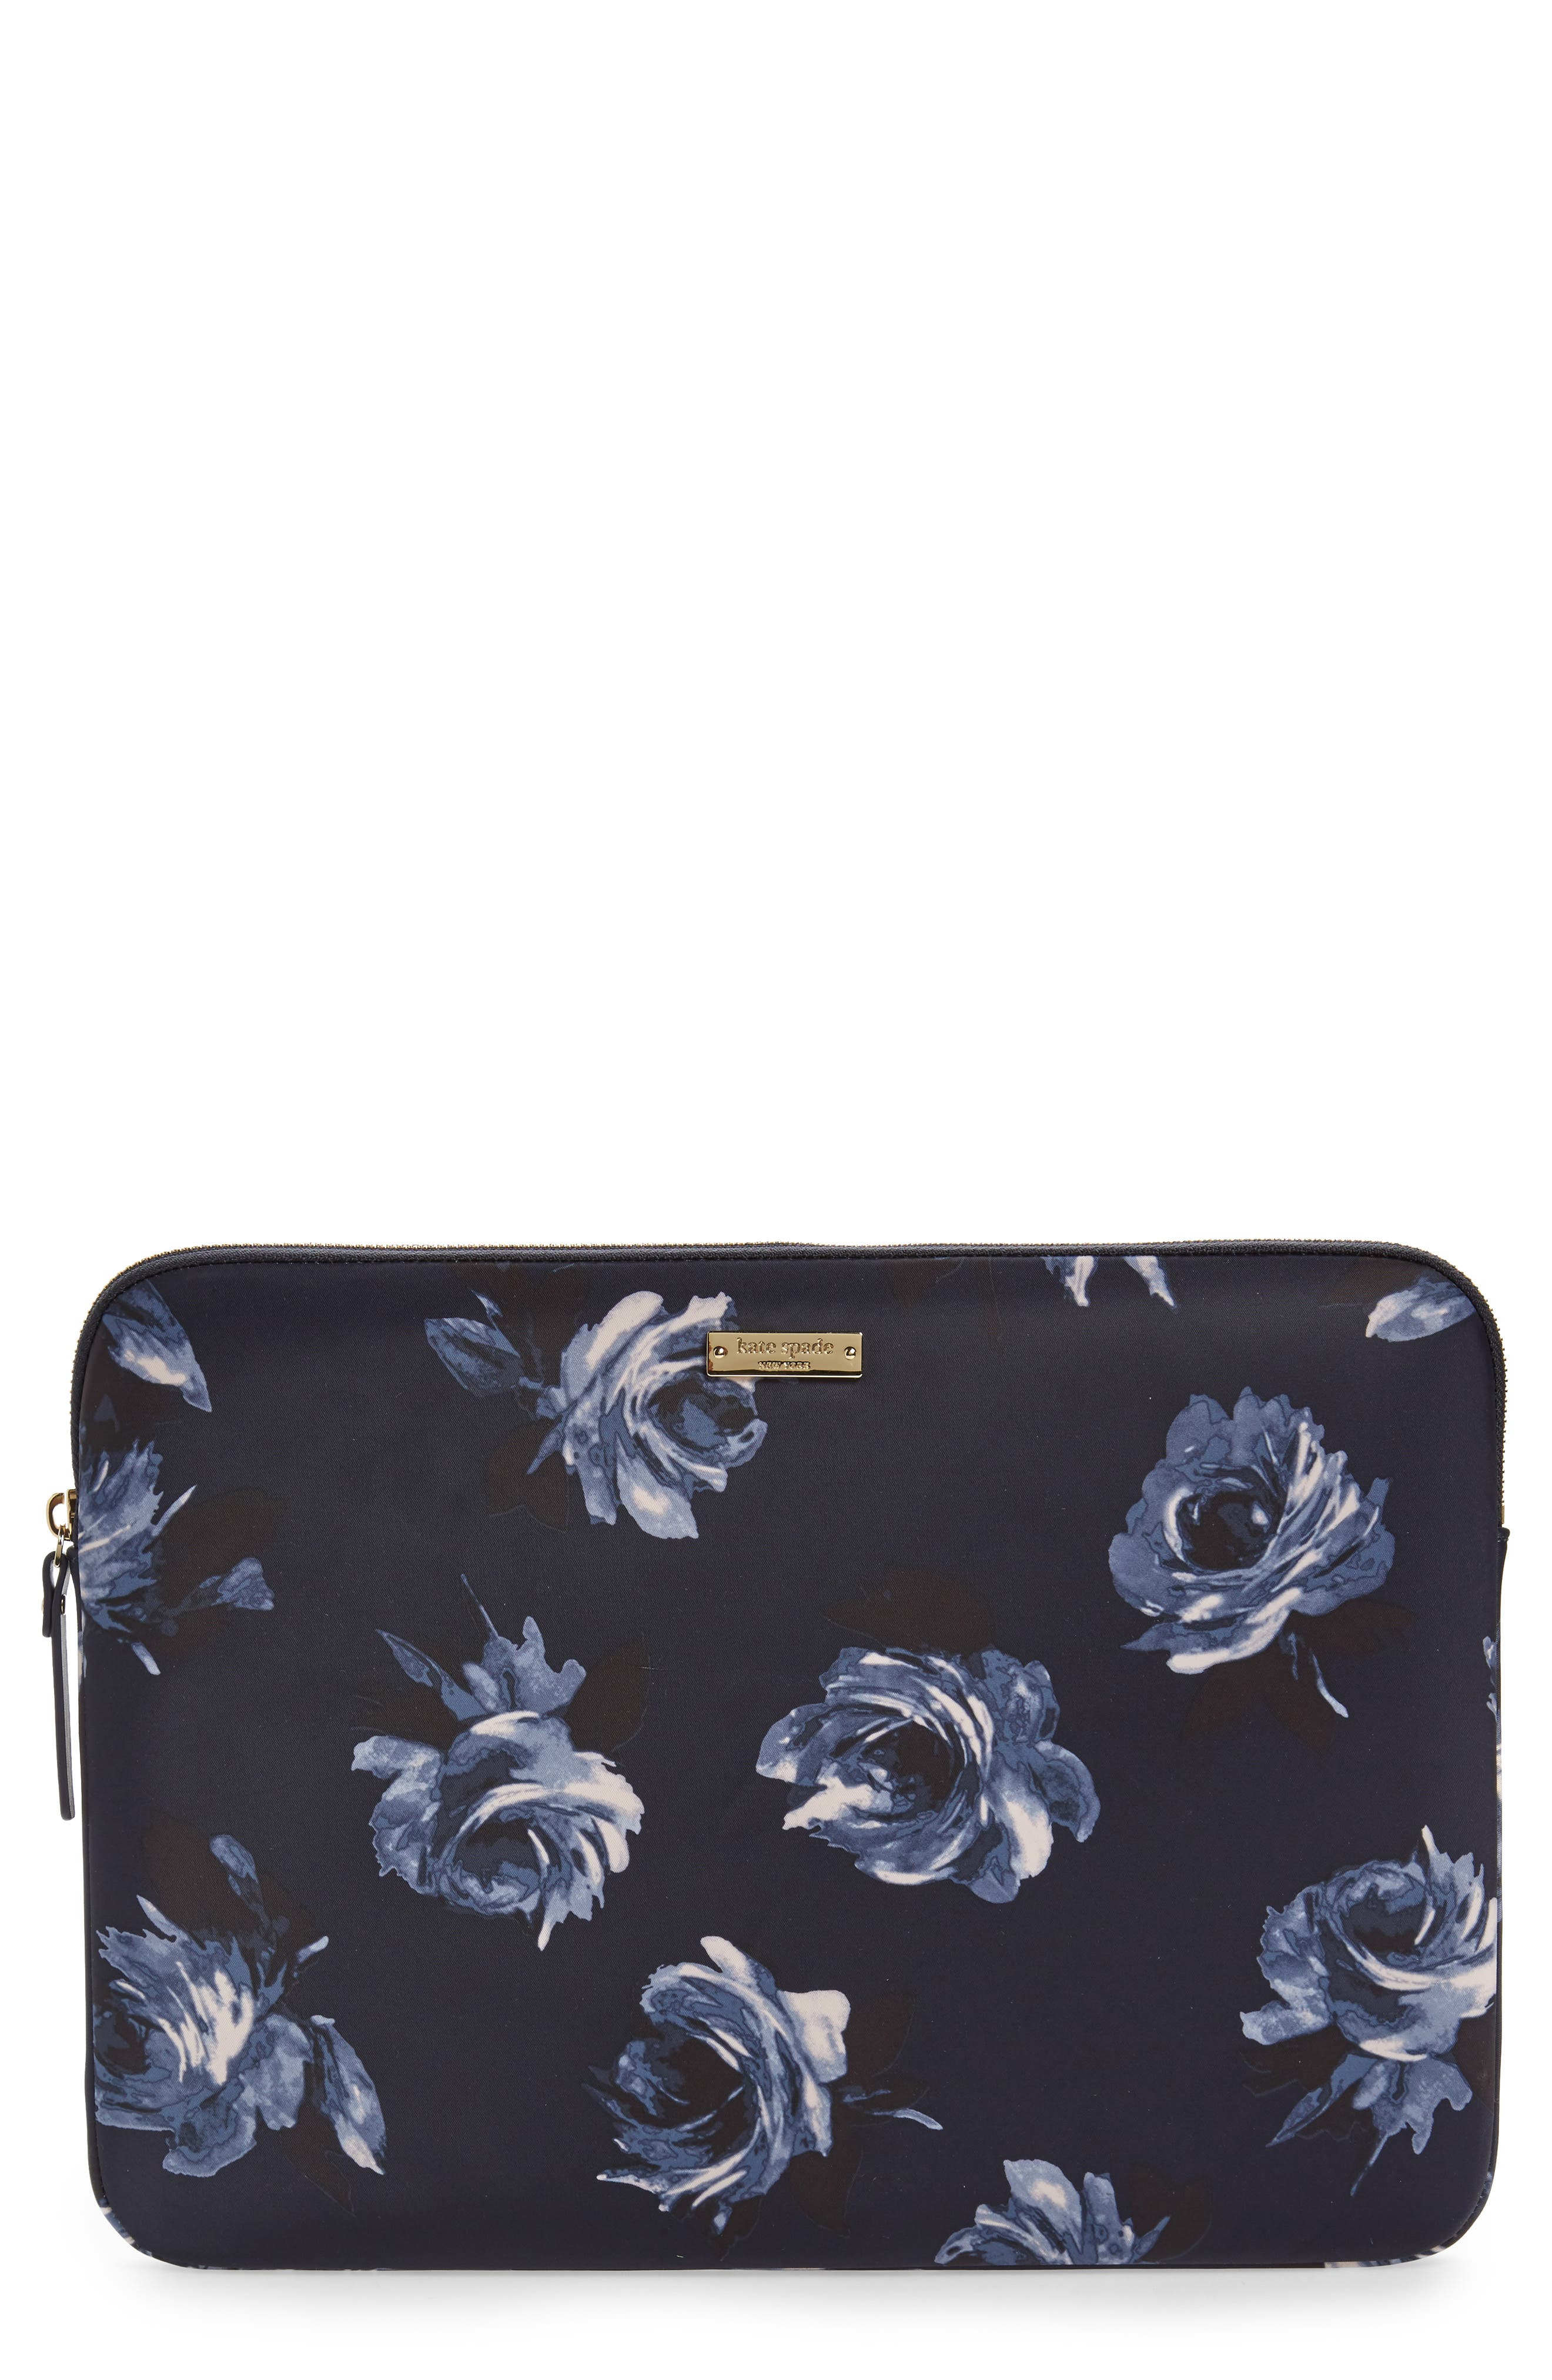 night rose 13-Inch laptop sleeve,                         Main,                         color,